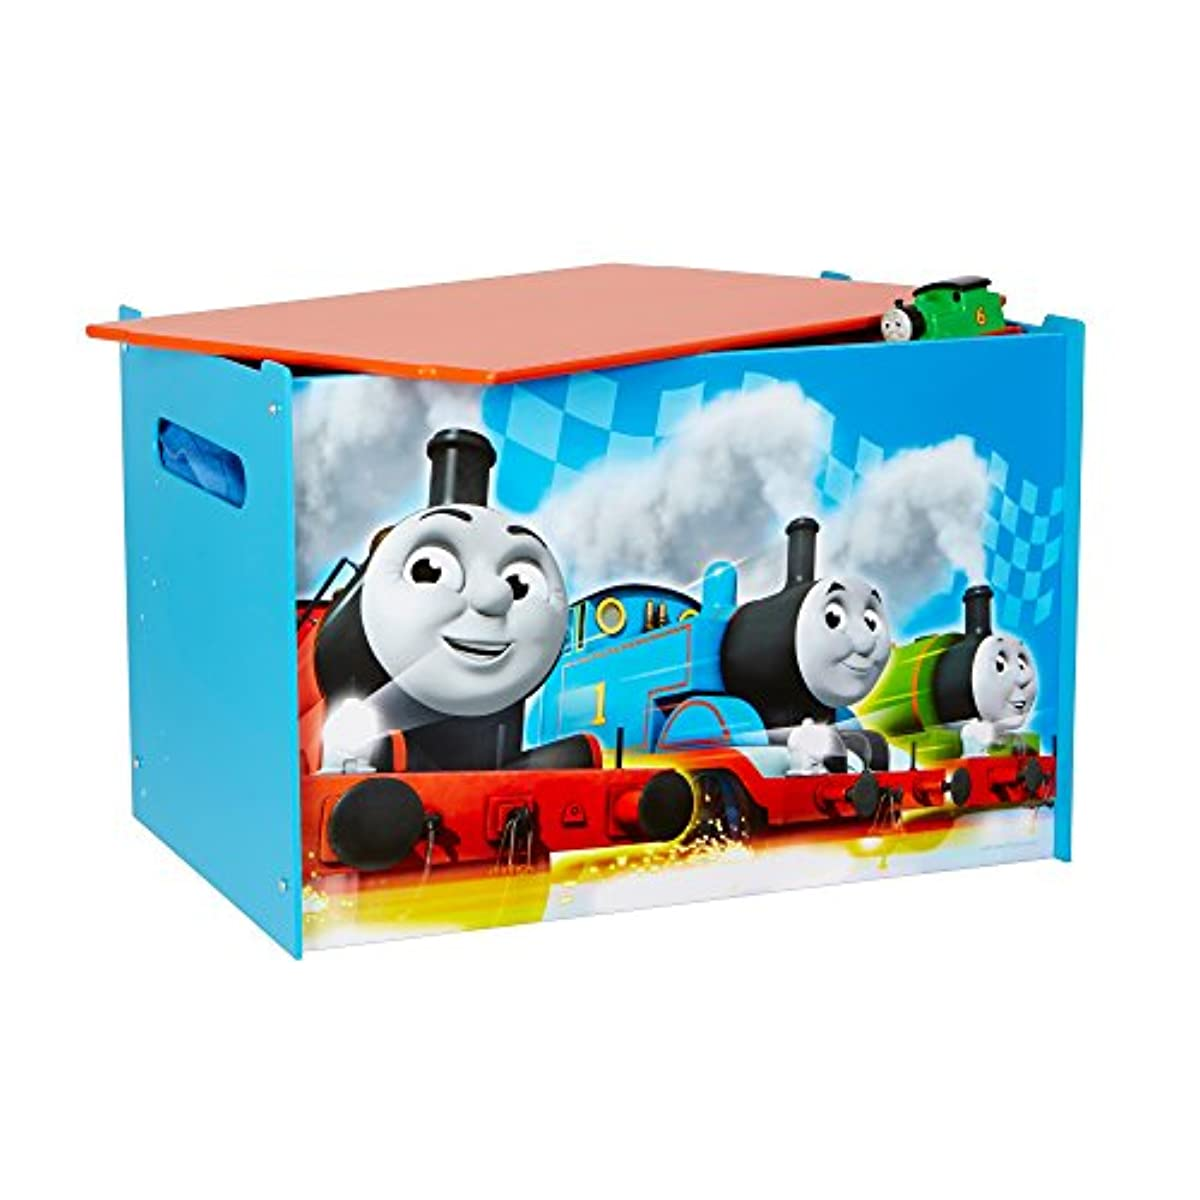 Kids Storage Bench Furniture Toy Box Bedroom Playroom: Thomas And Friends Kid Toy Box Bedroom Storage Chest Bench